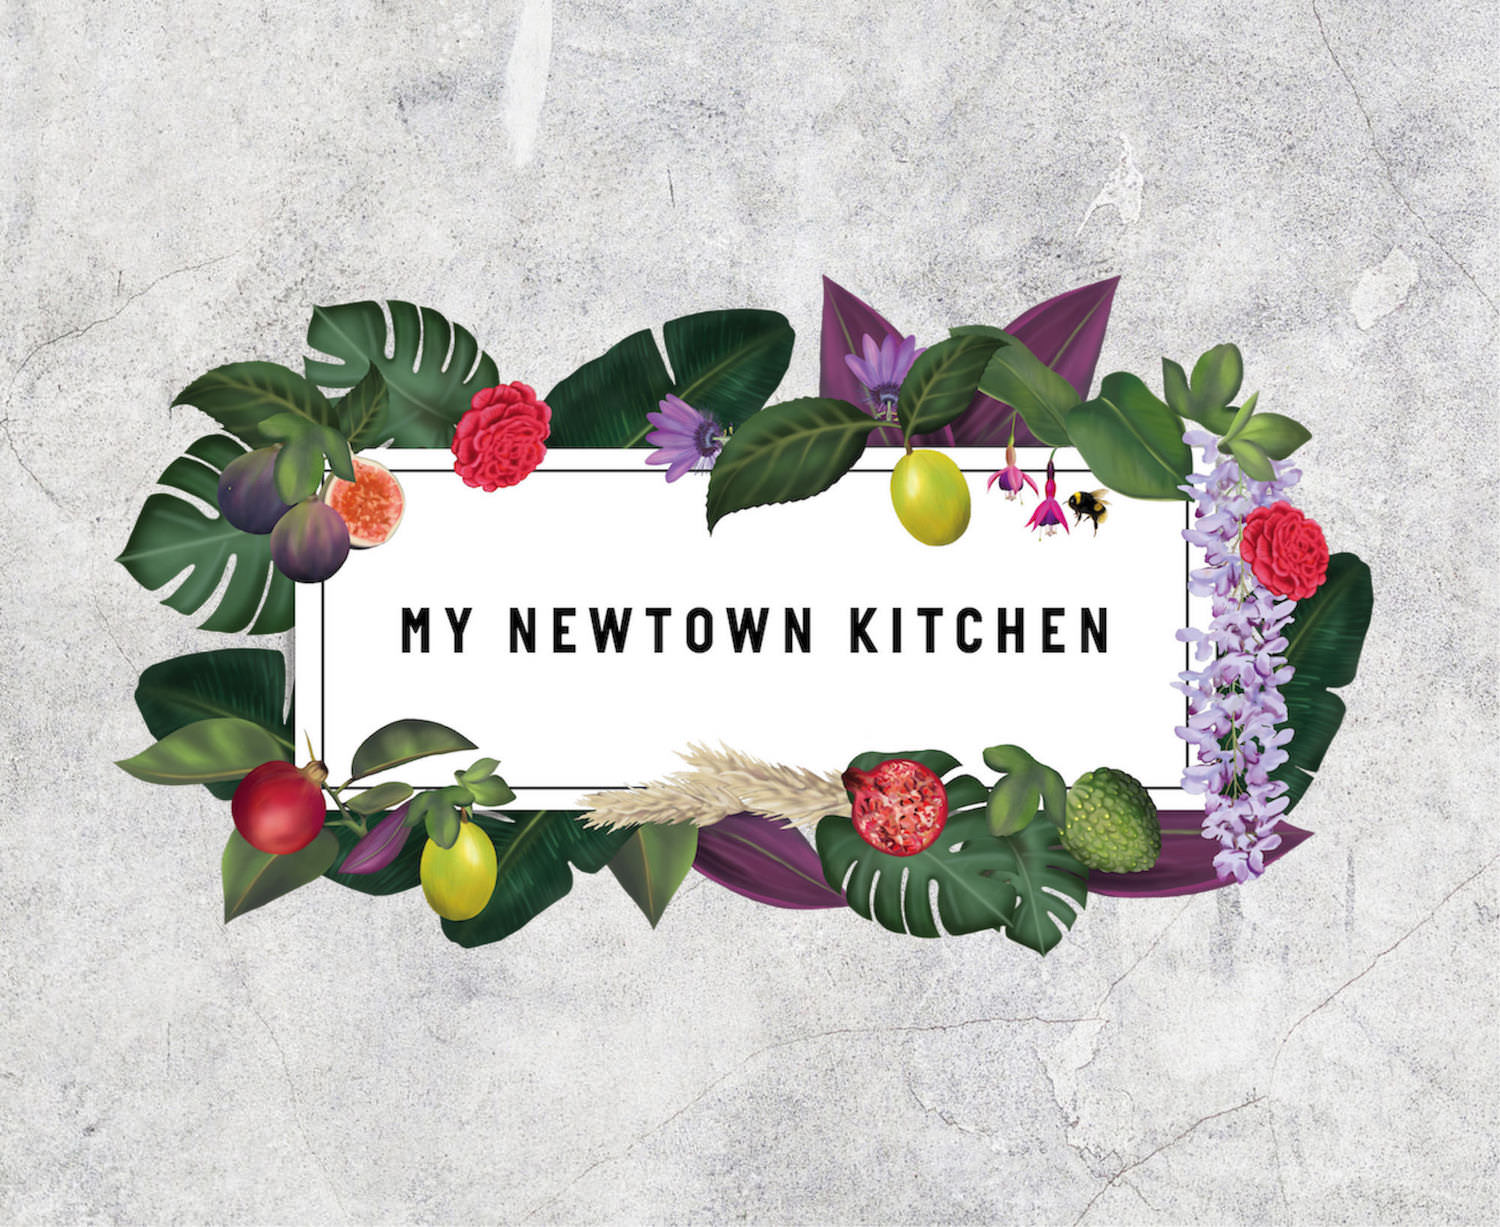 Jo-ChunYan-Graphic-Designer-My-Newtown-Kitchen-Logo.jpg